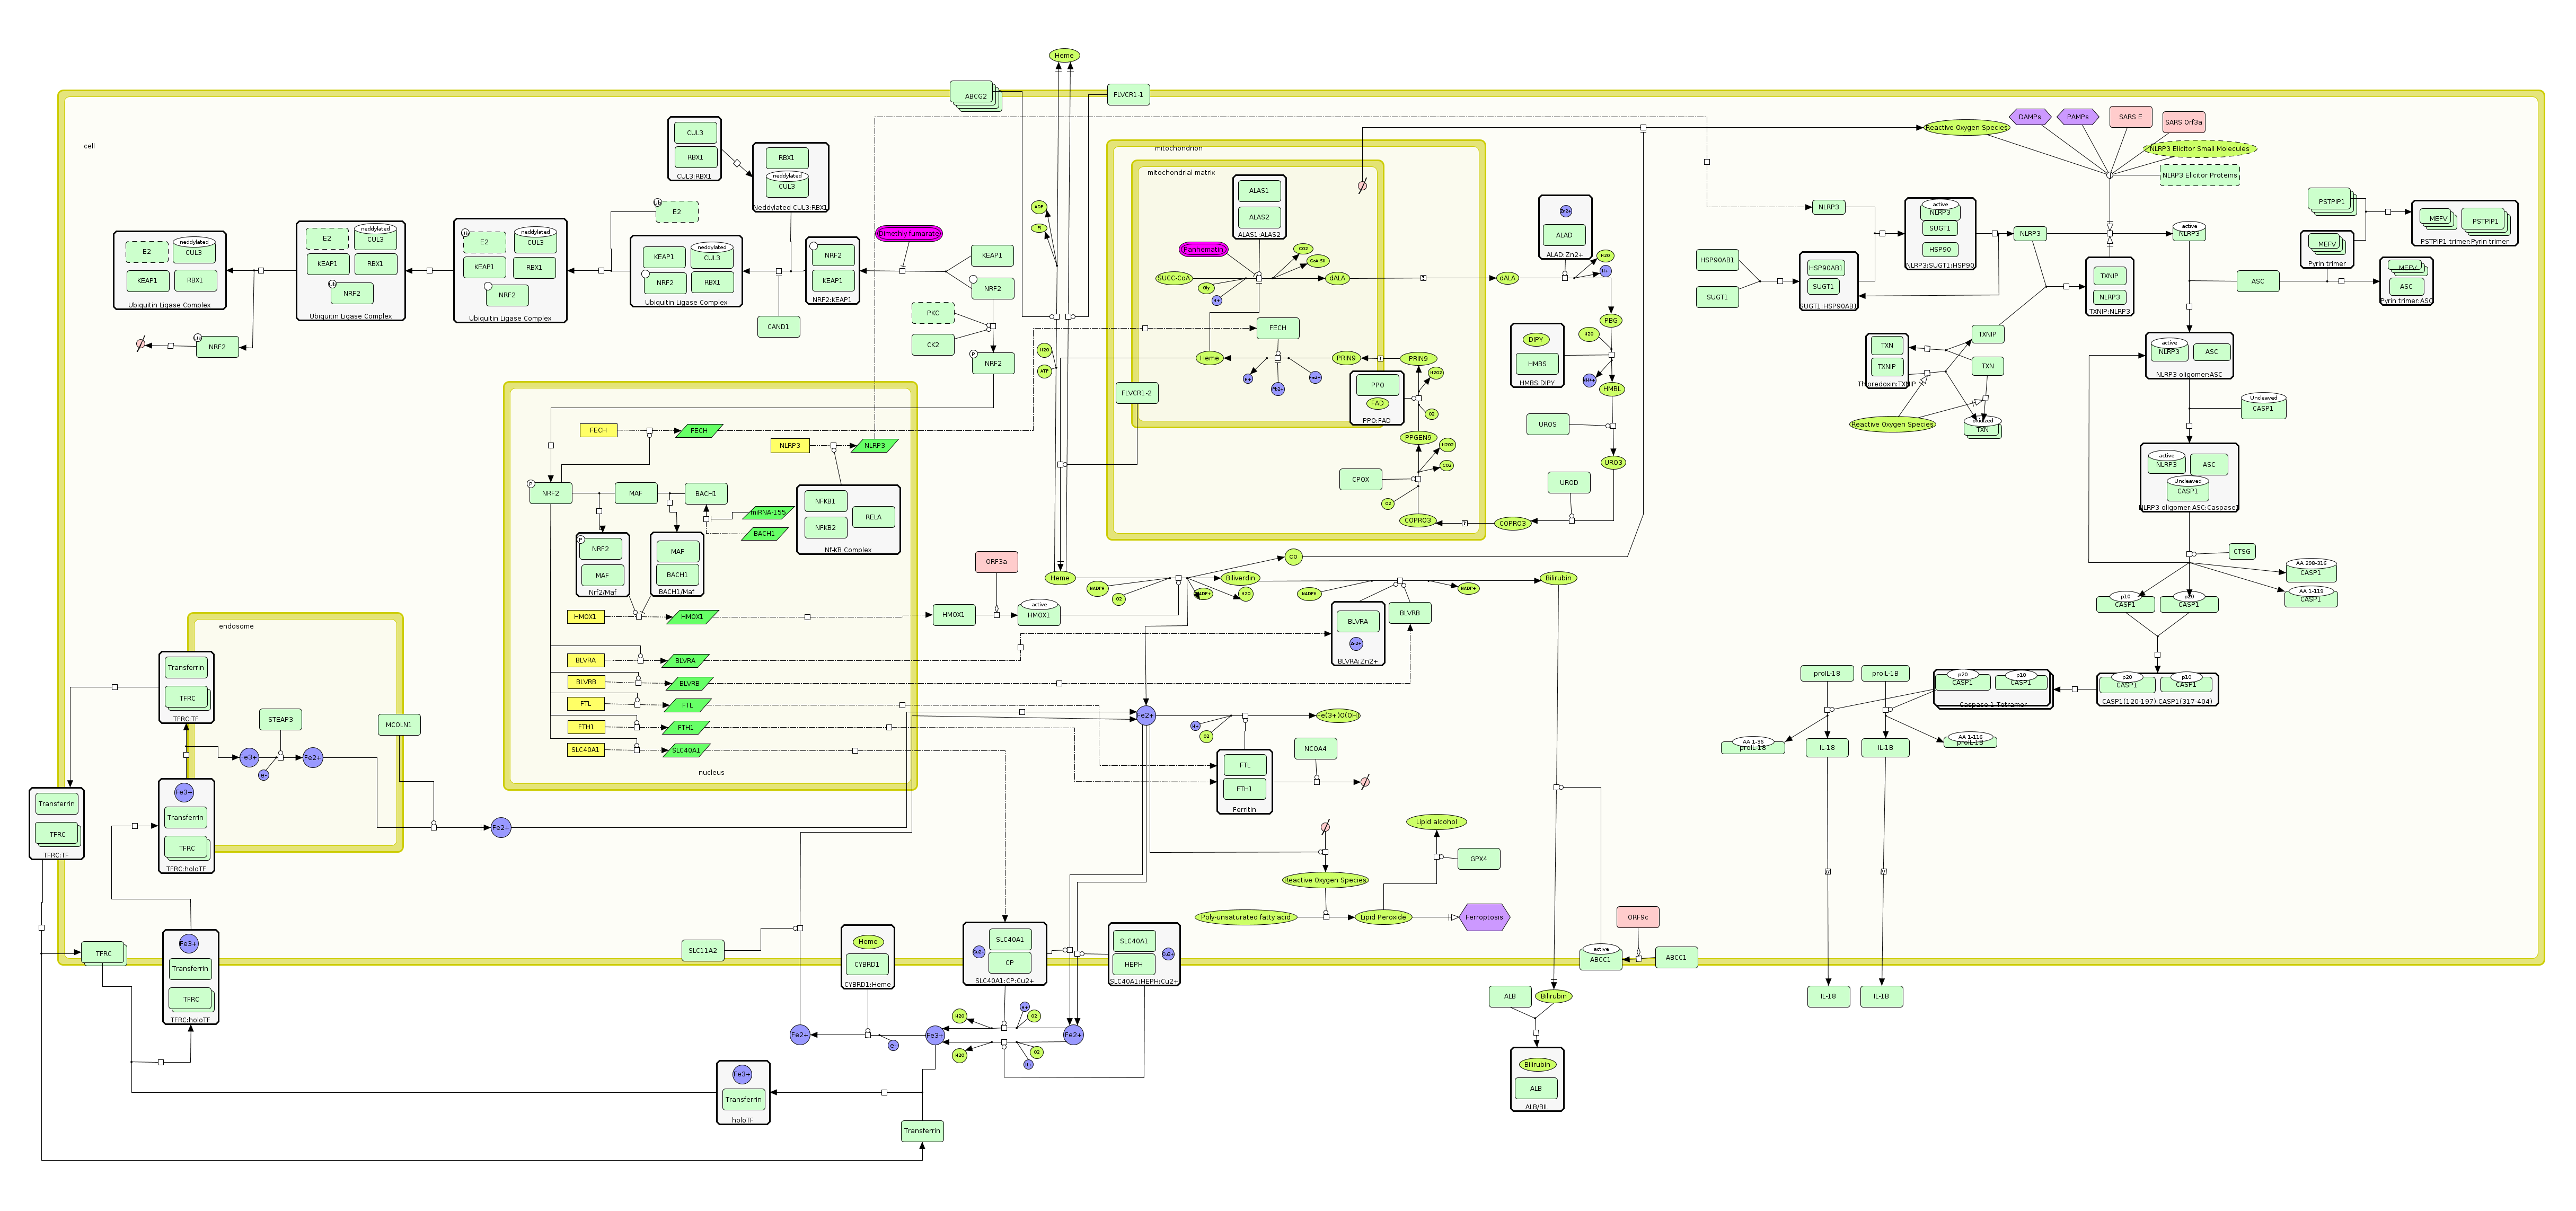 Curation/HMOX1 pathway/HMOX1_Pathway_stable.png